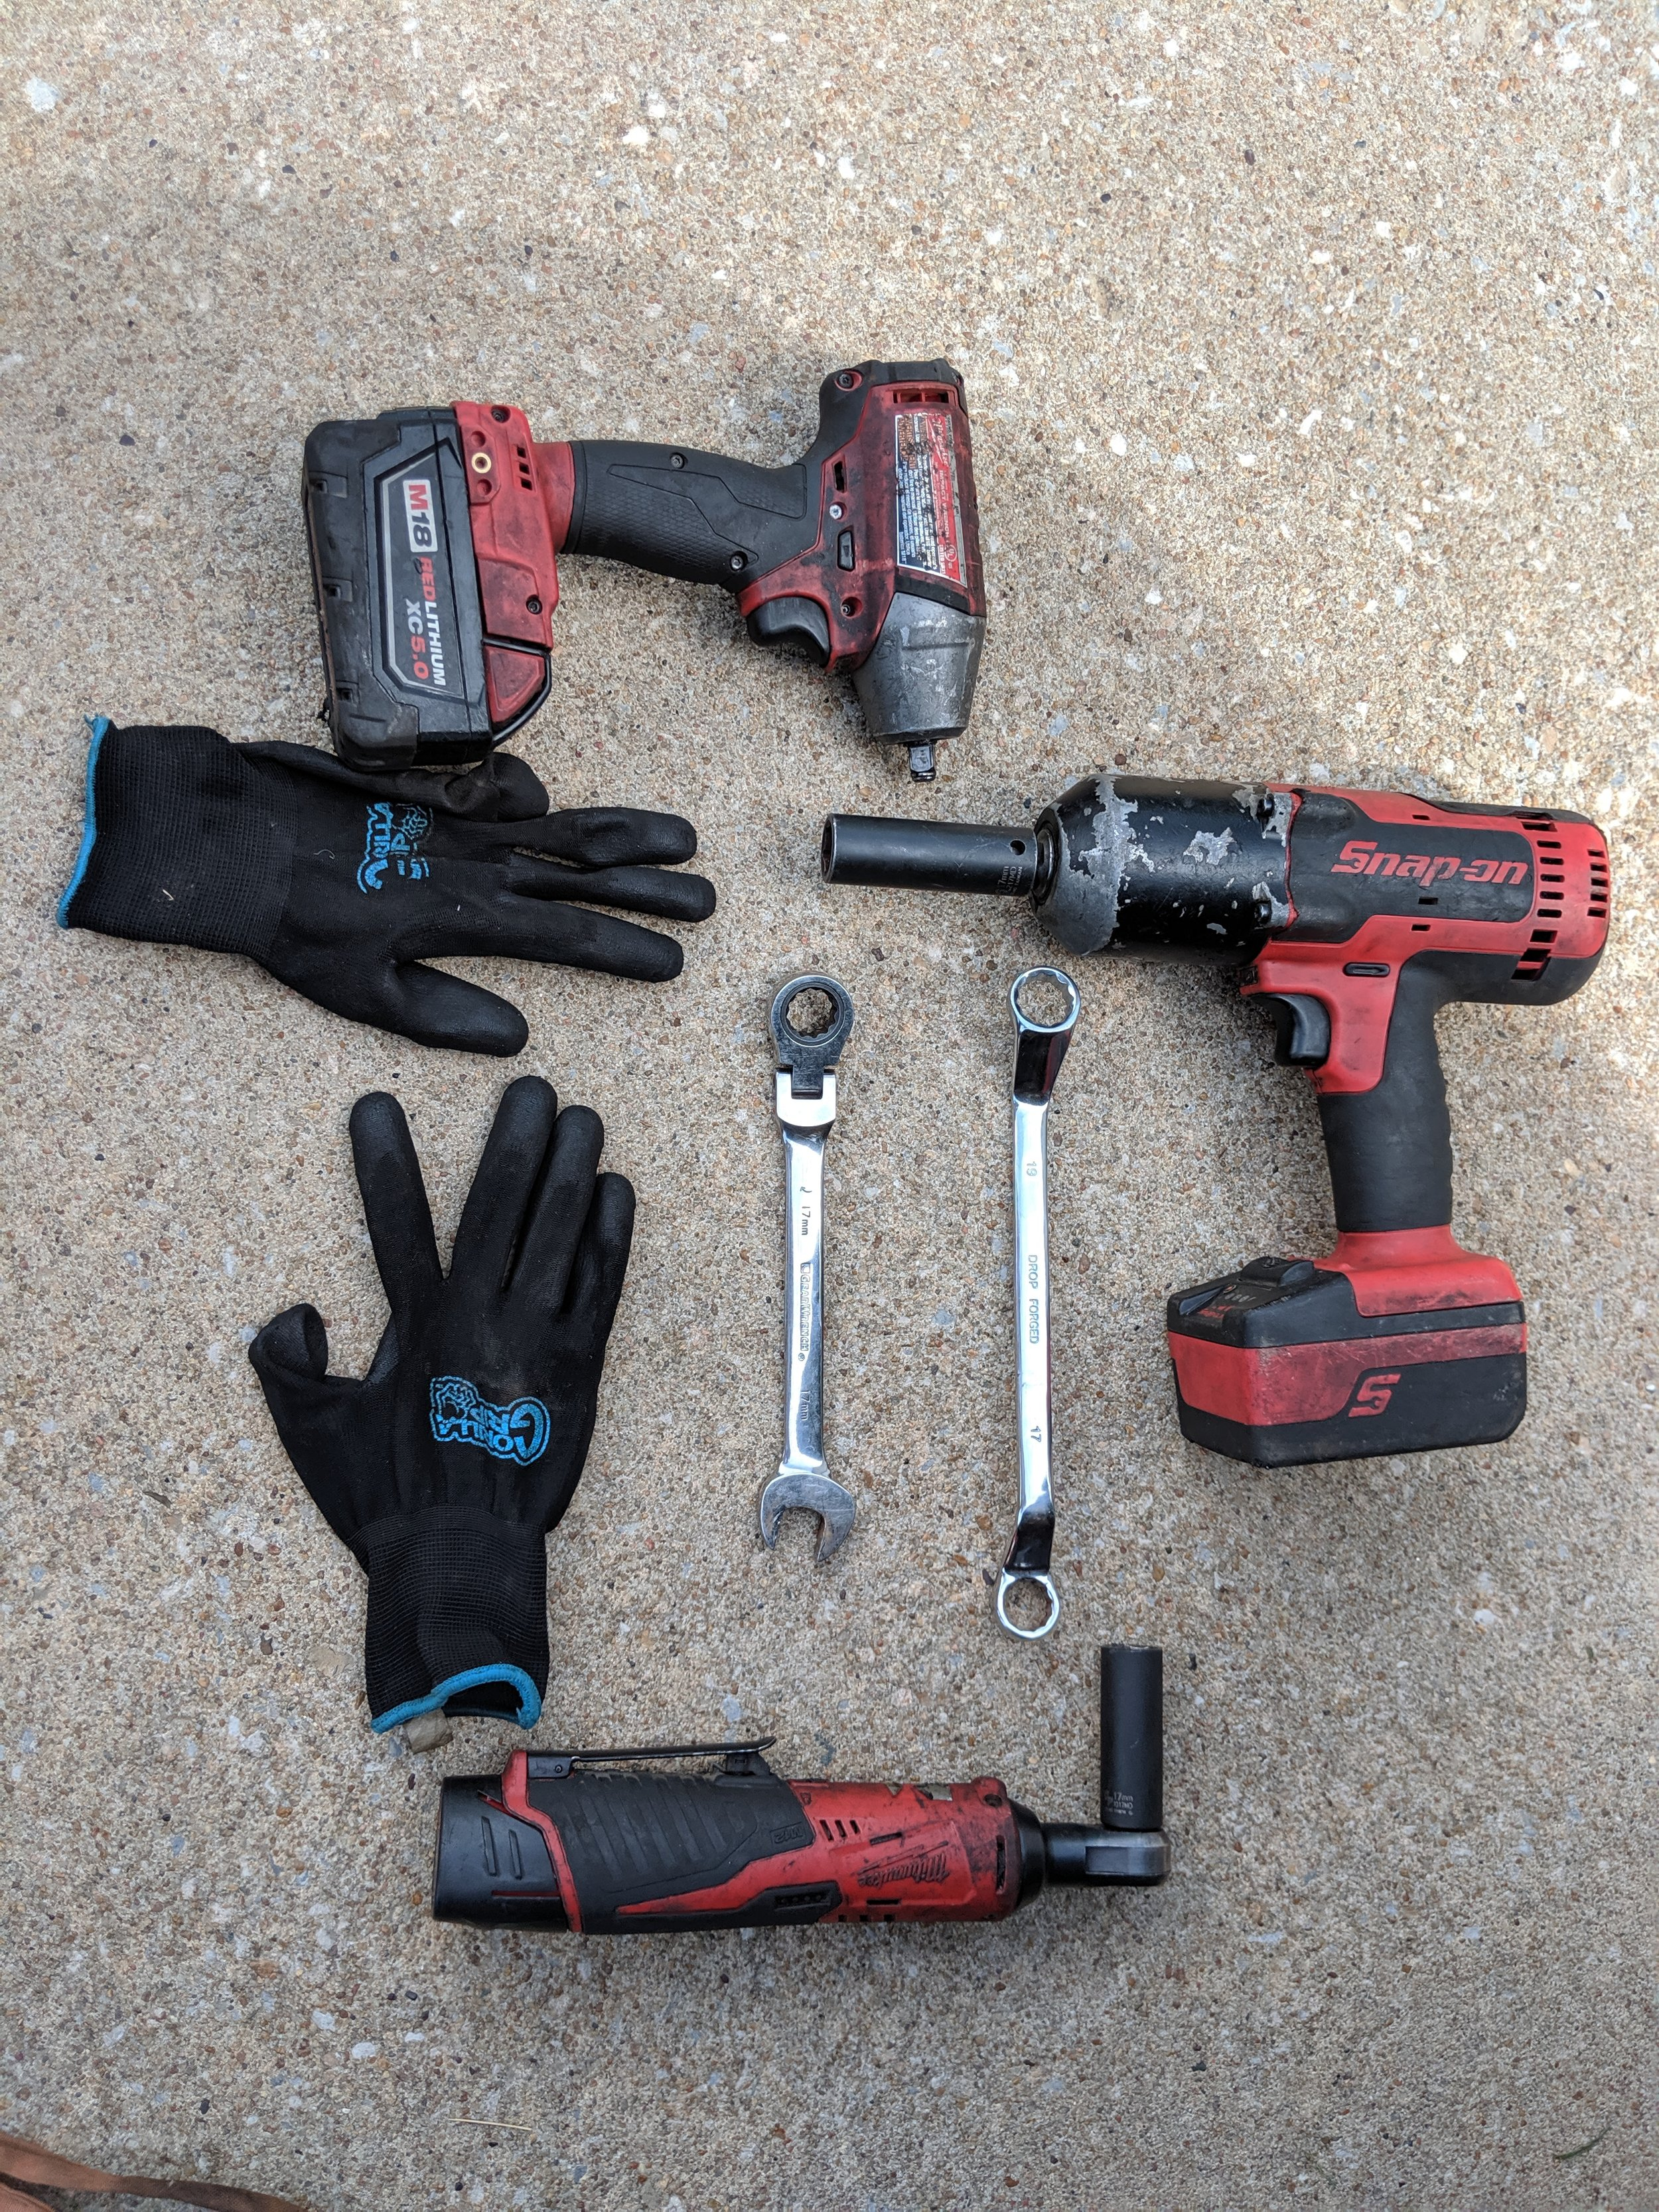 """The usual suspects…. my favorite Milwaukee's 3/8th impact, ratchet and a special guest of my Snap-on 1/2"""" impact. Gorilla gloves and a couple  17mm wrenches  round out the group.   Gearwrench metric ratcheting swivel head wrench set   Gorilla grip large gloves    Gearwrench 3/8ths ratchet   Milwaukee 3/8ths impact gun    Milwaukee 3/8ths electric ratchet"""